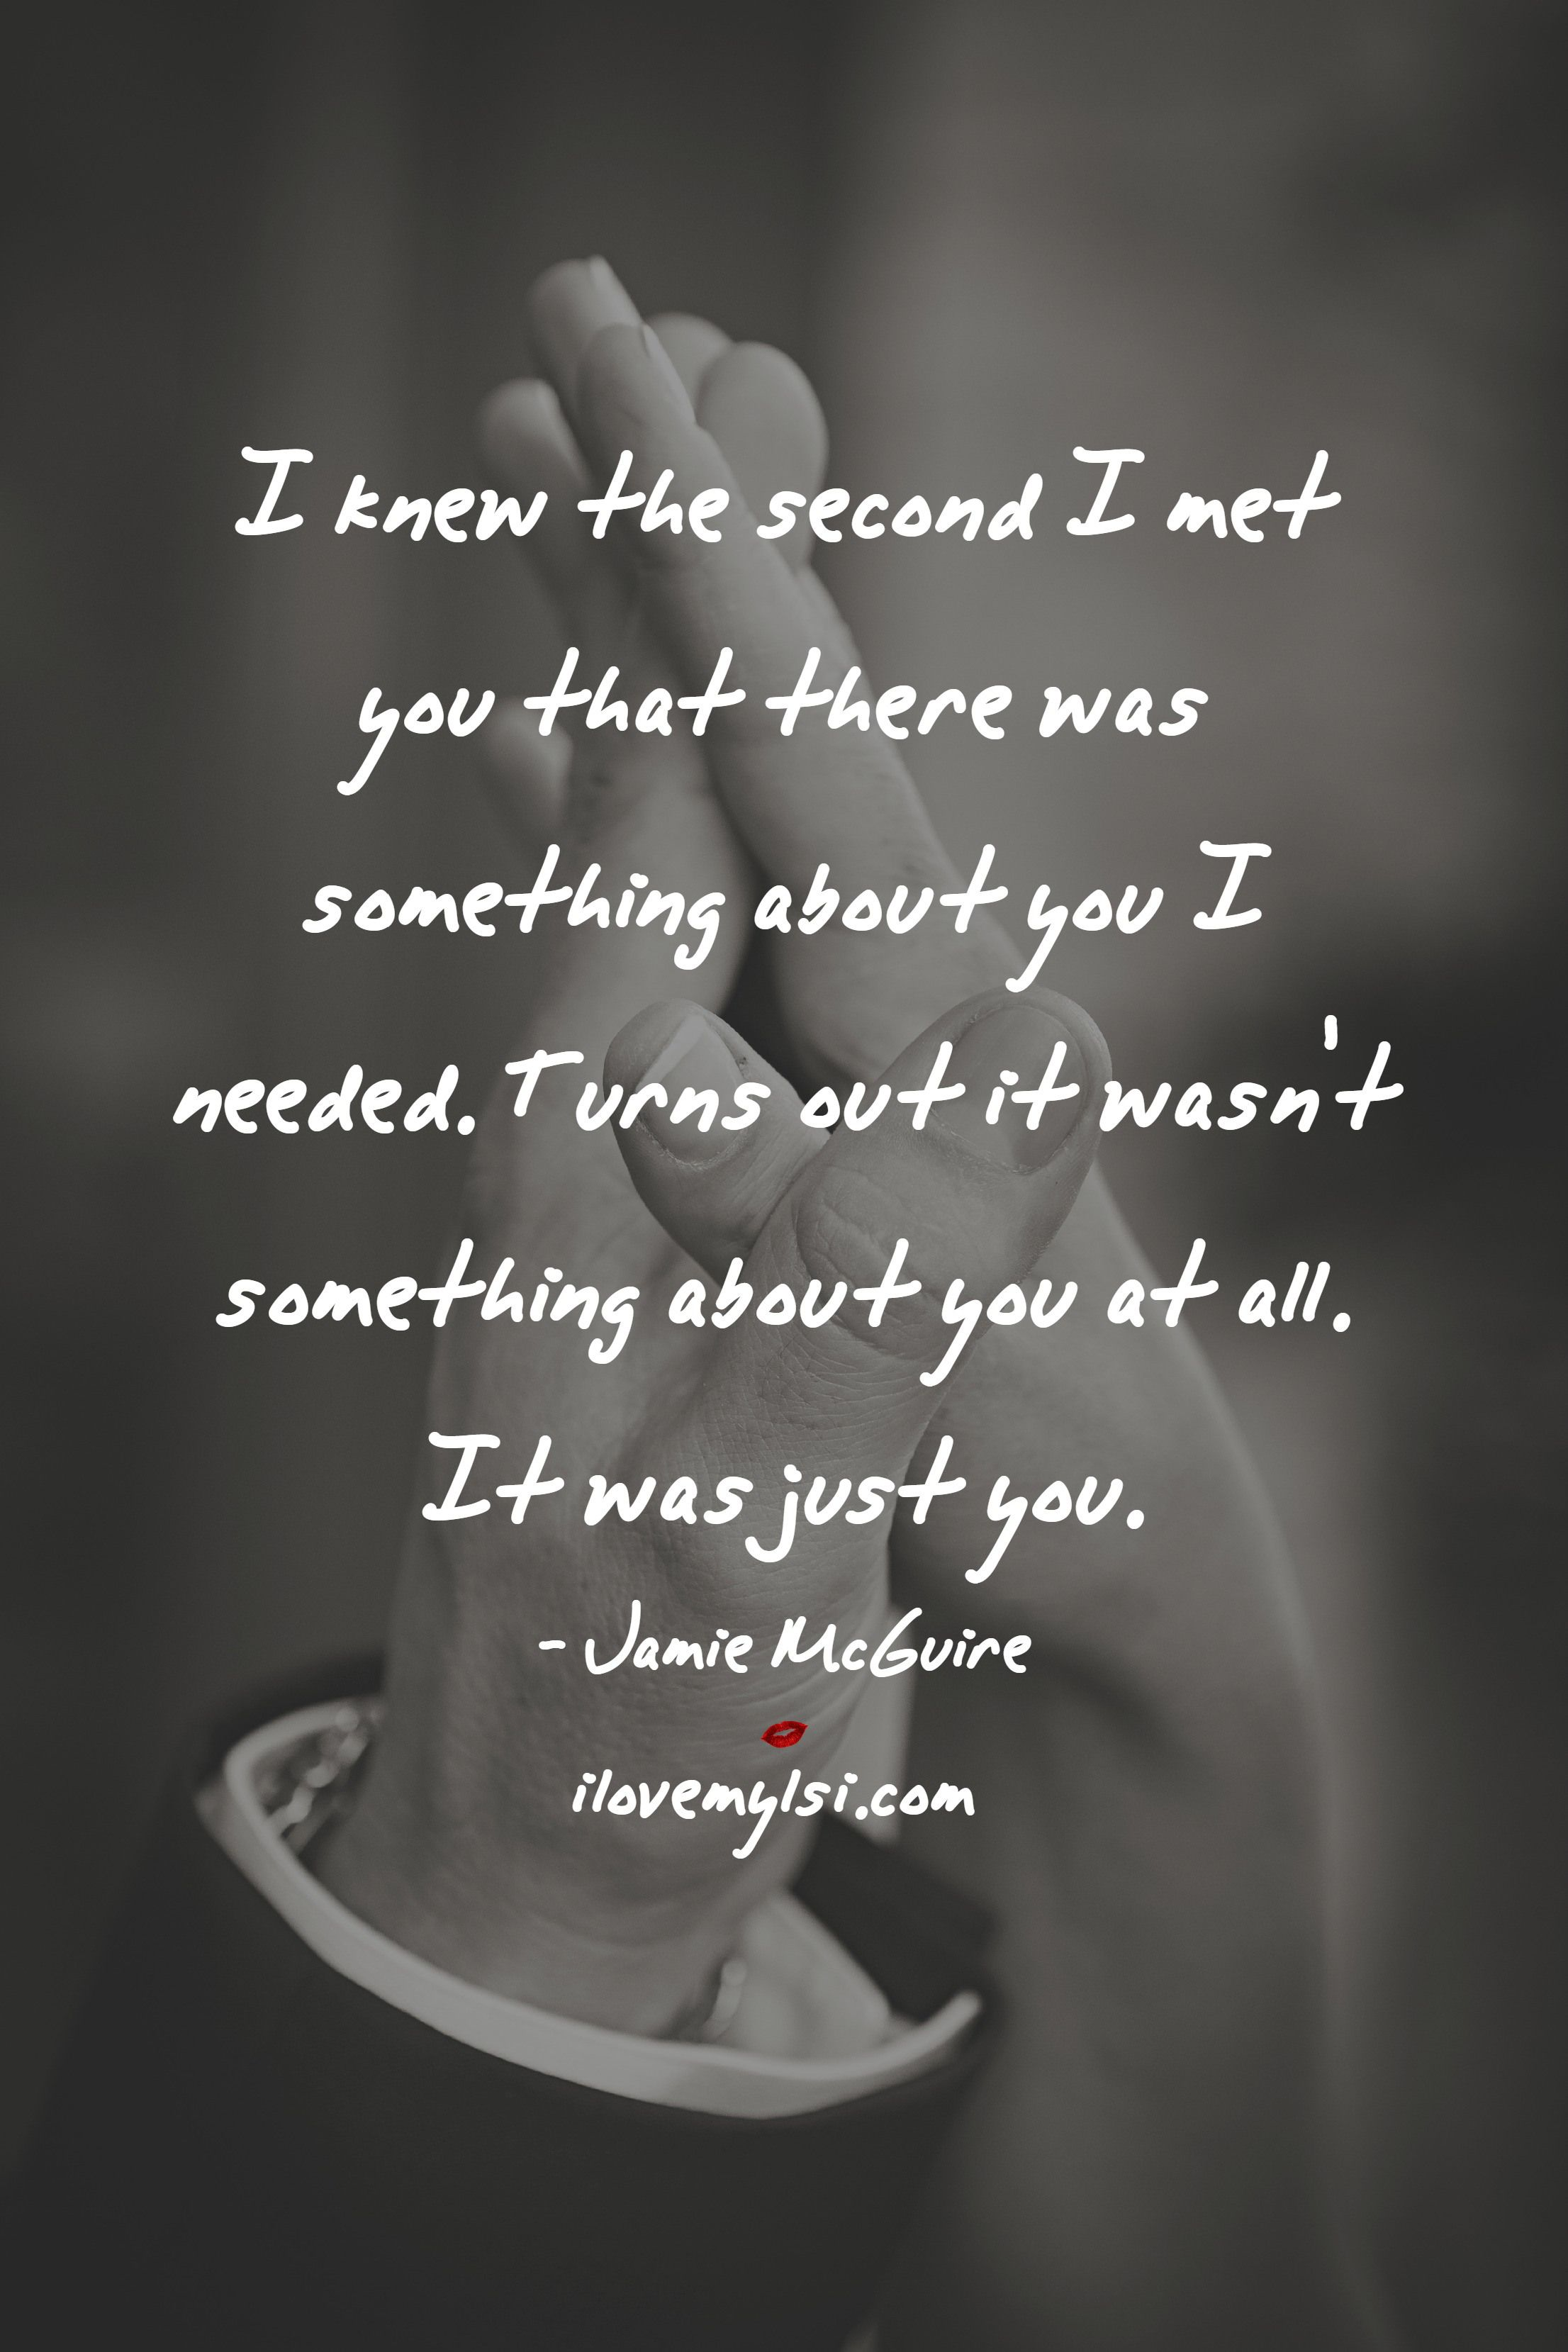 I Knew The Second I Met You Quotes About Love